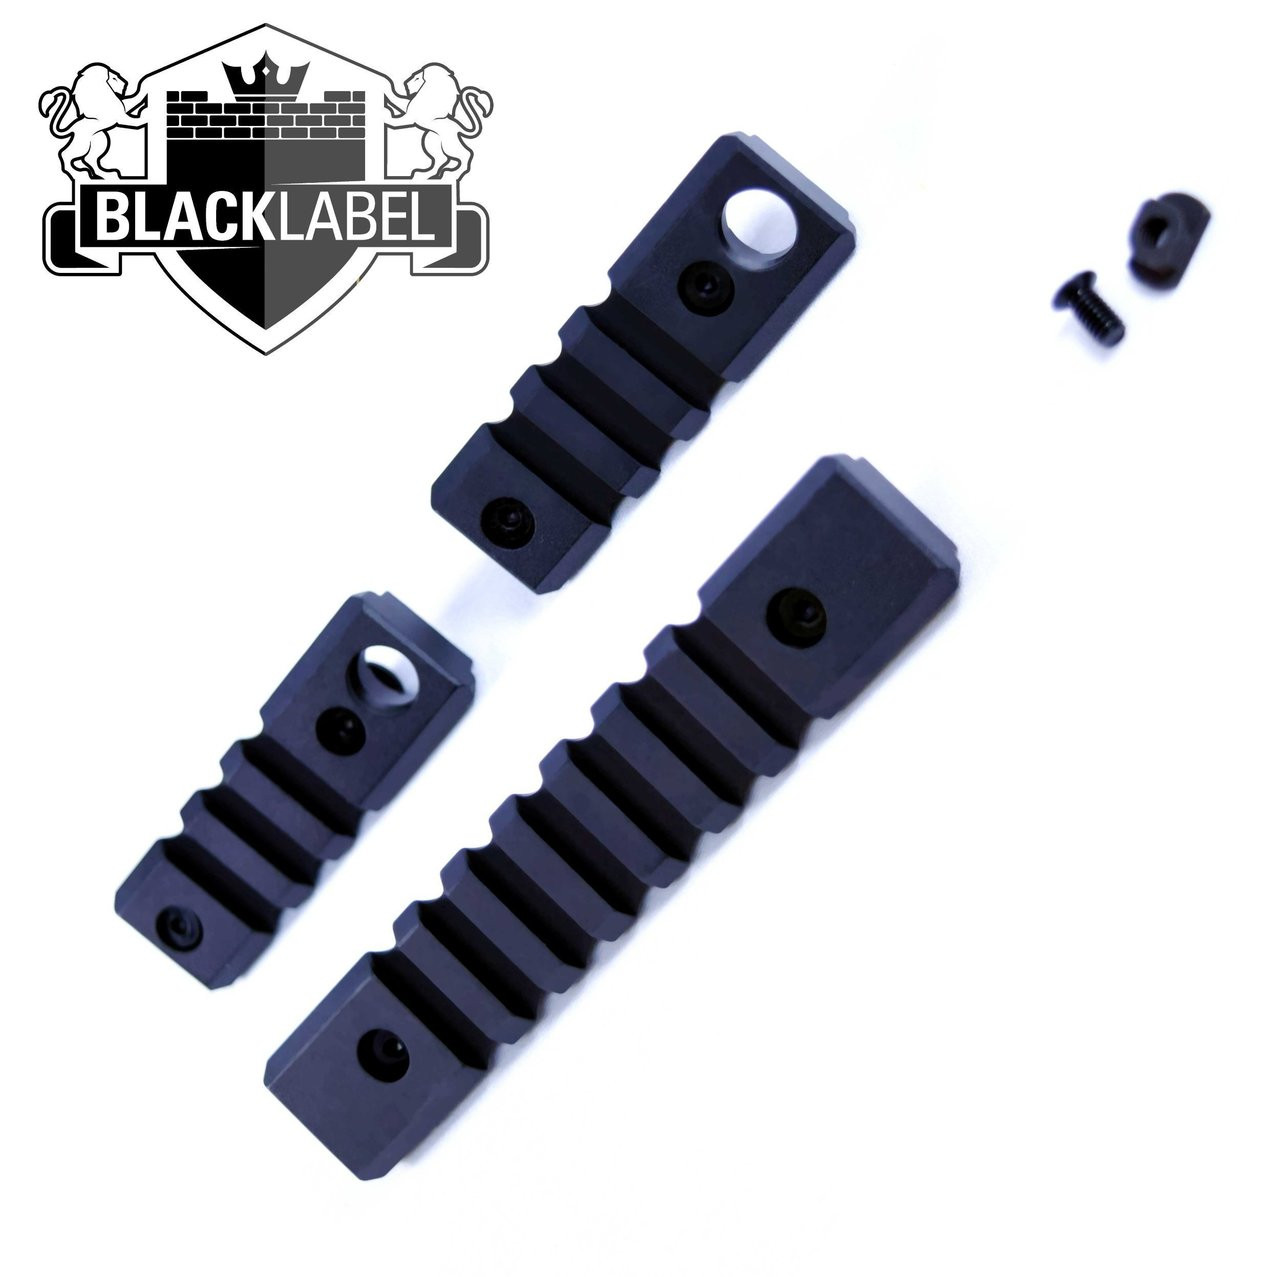 Hardware Tactical G2 Series | 3 Keymod Rail Accessory Pack